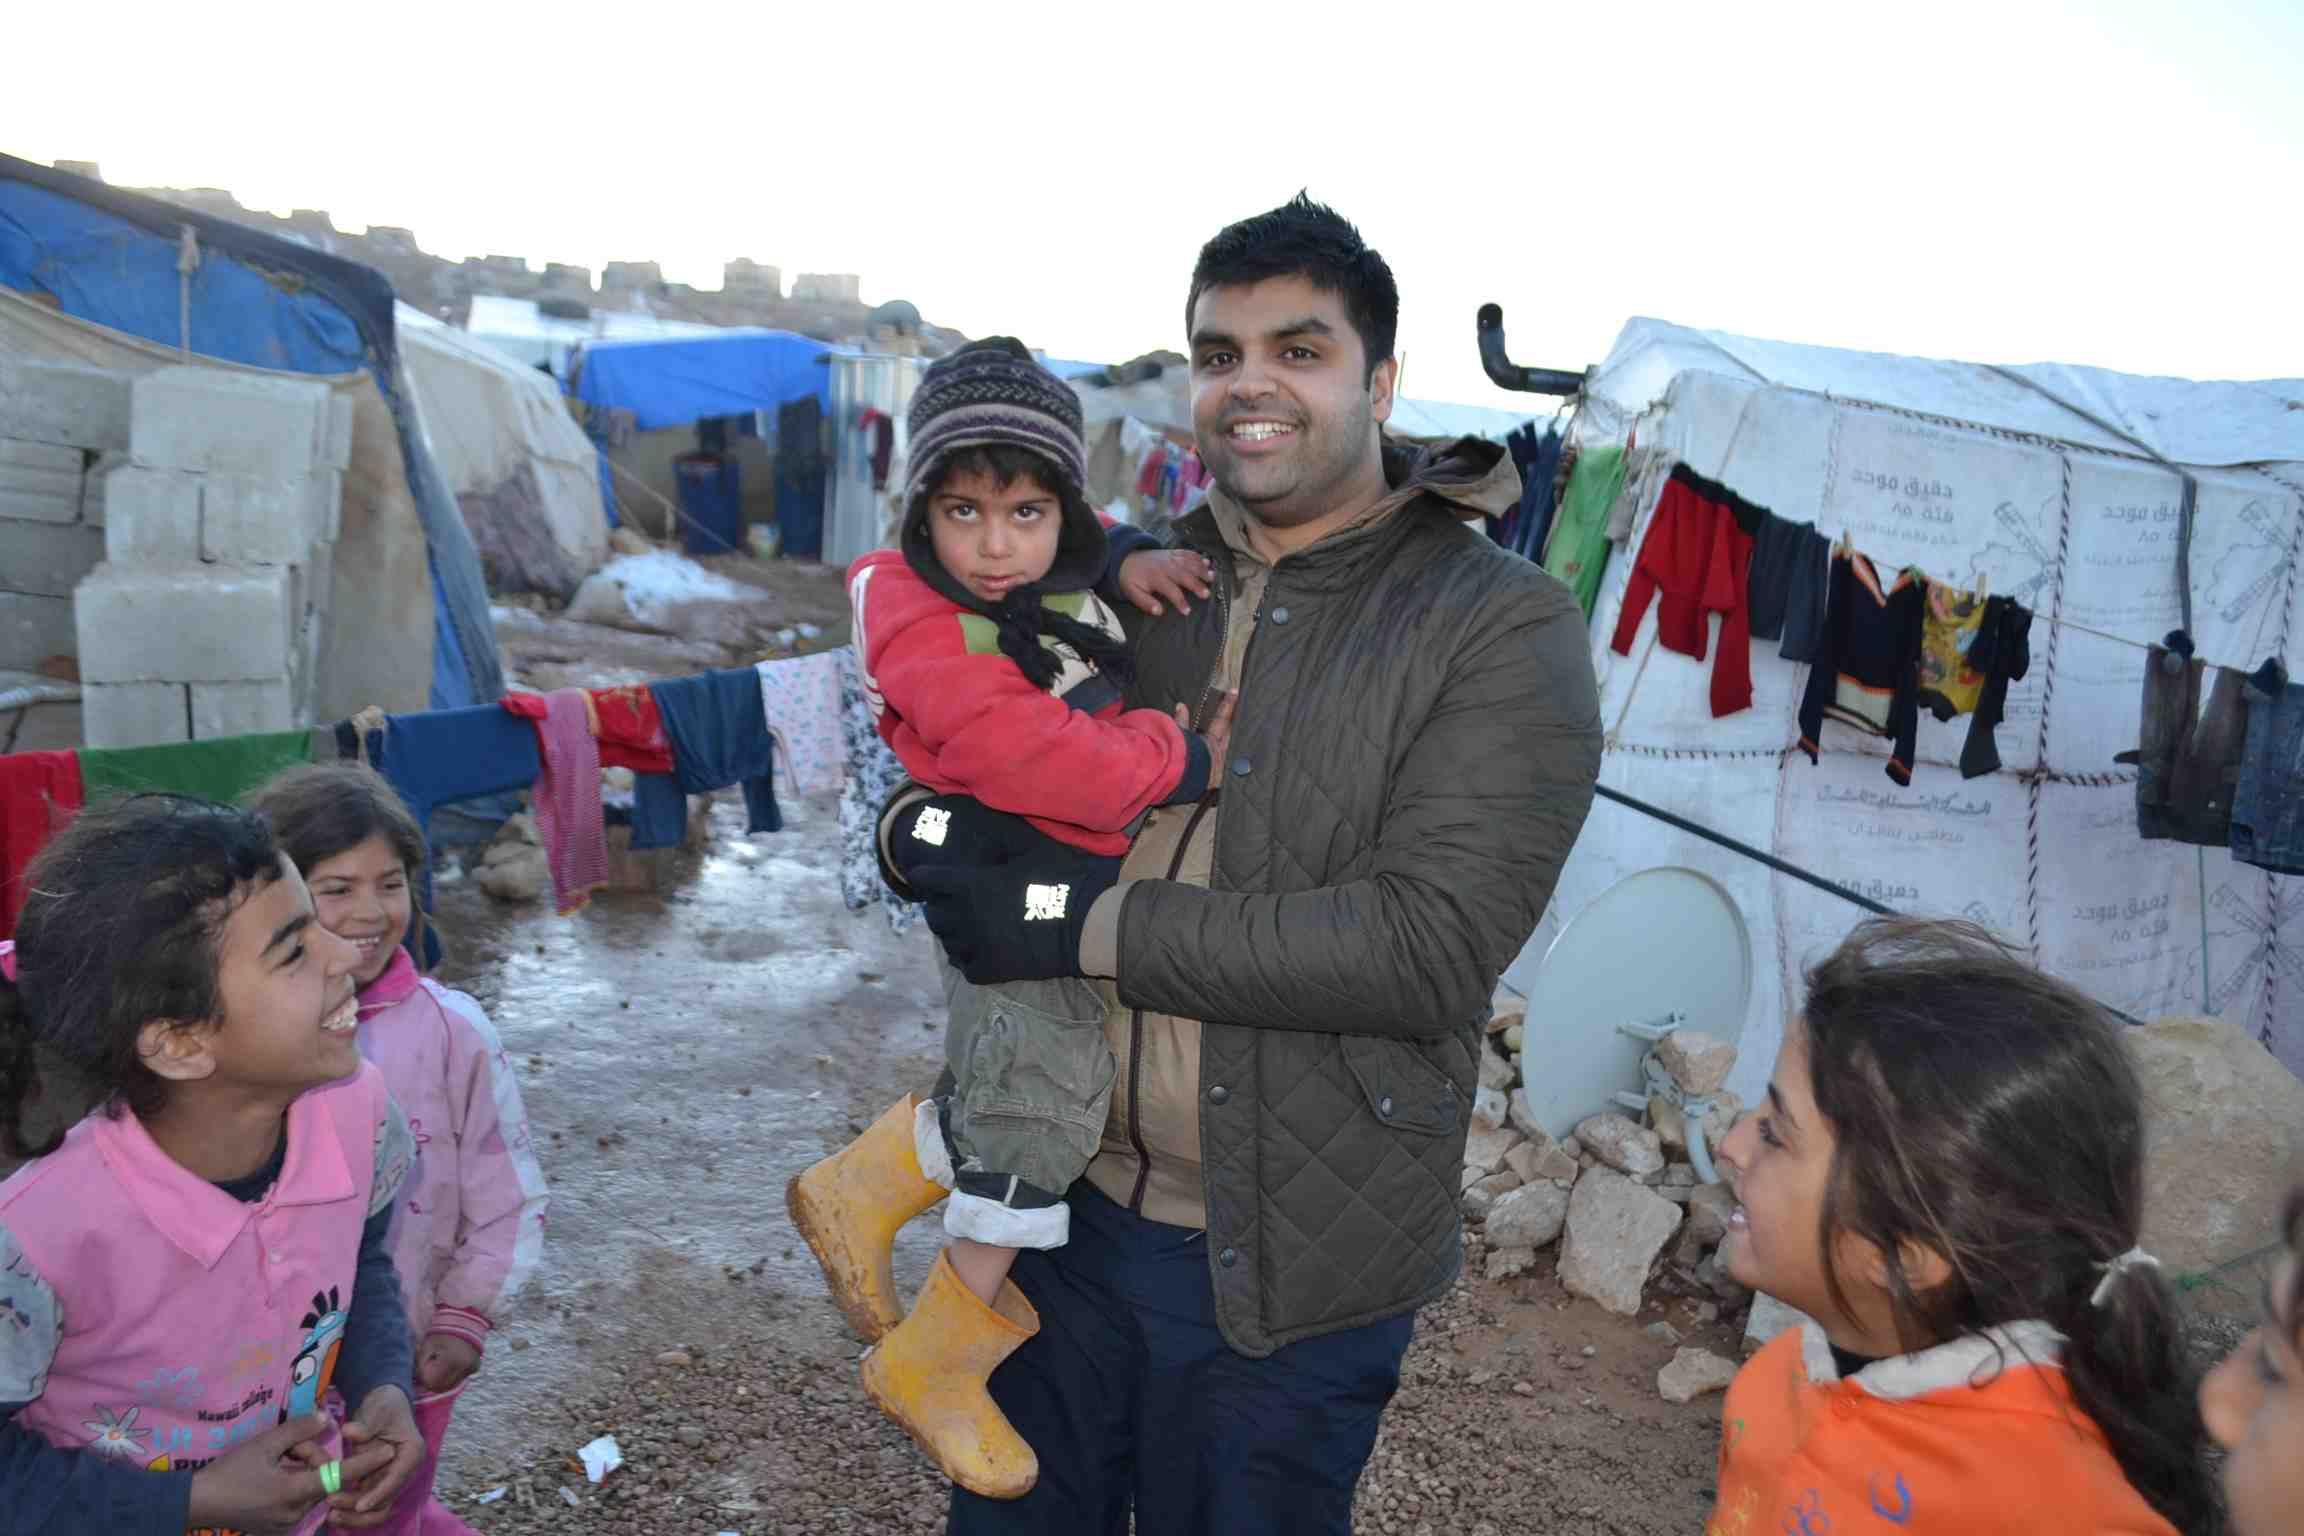 Syrian Refugee Camps Winter Relief